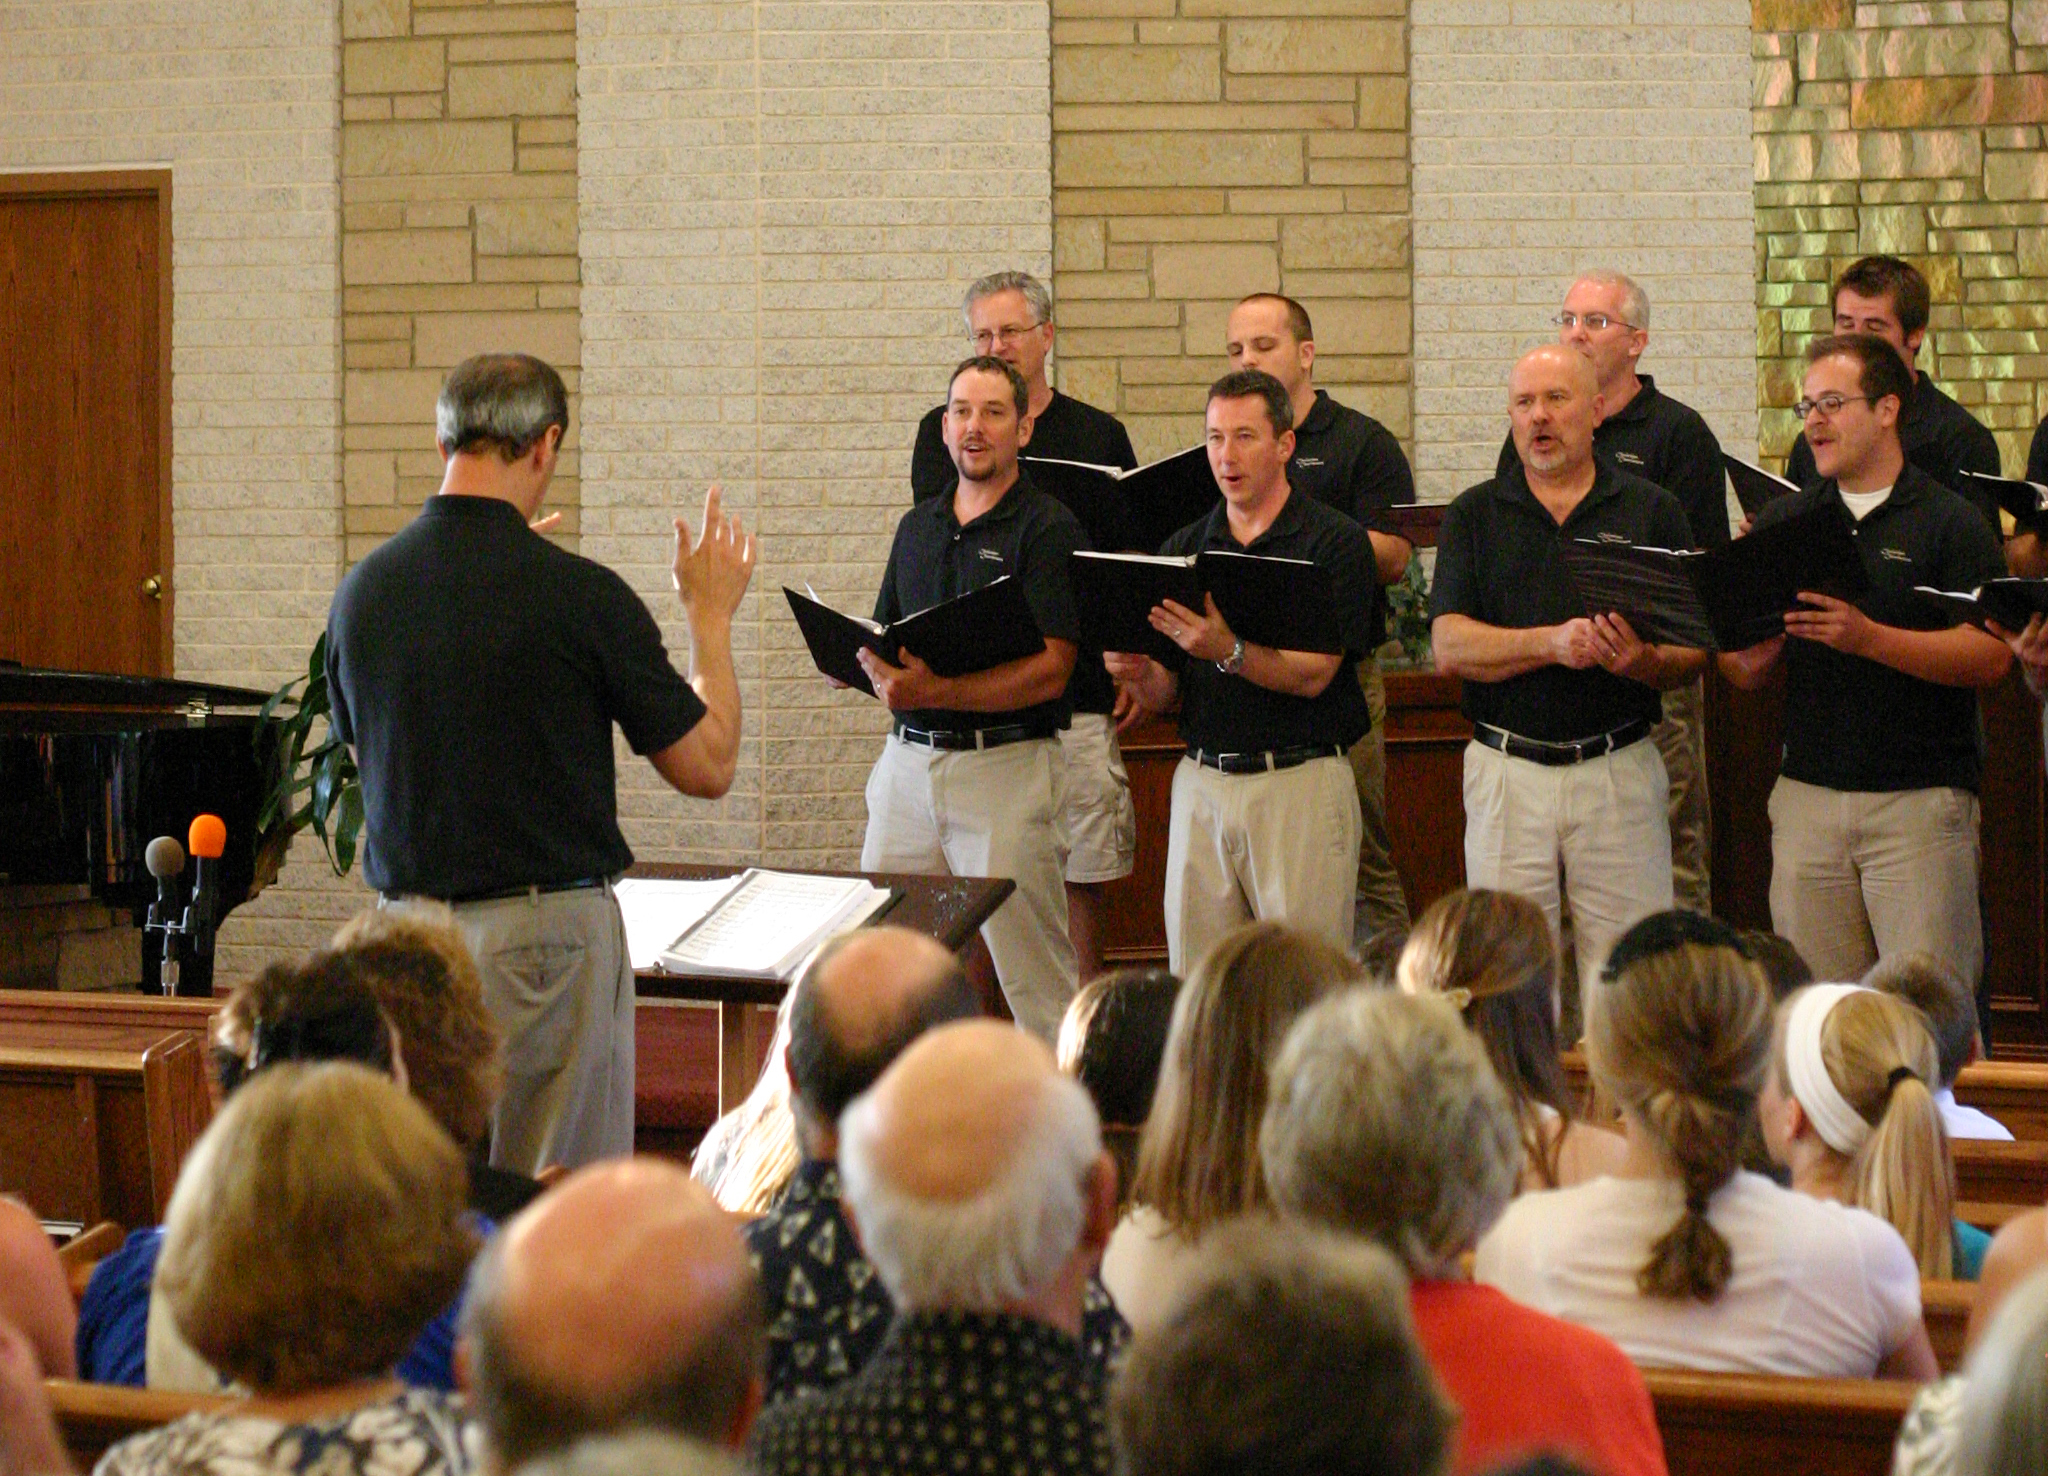 The Christian Choristers performed in Norton, Ohio on August 9, 2014.